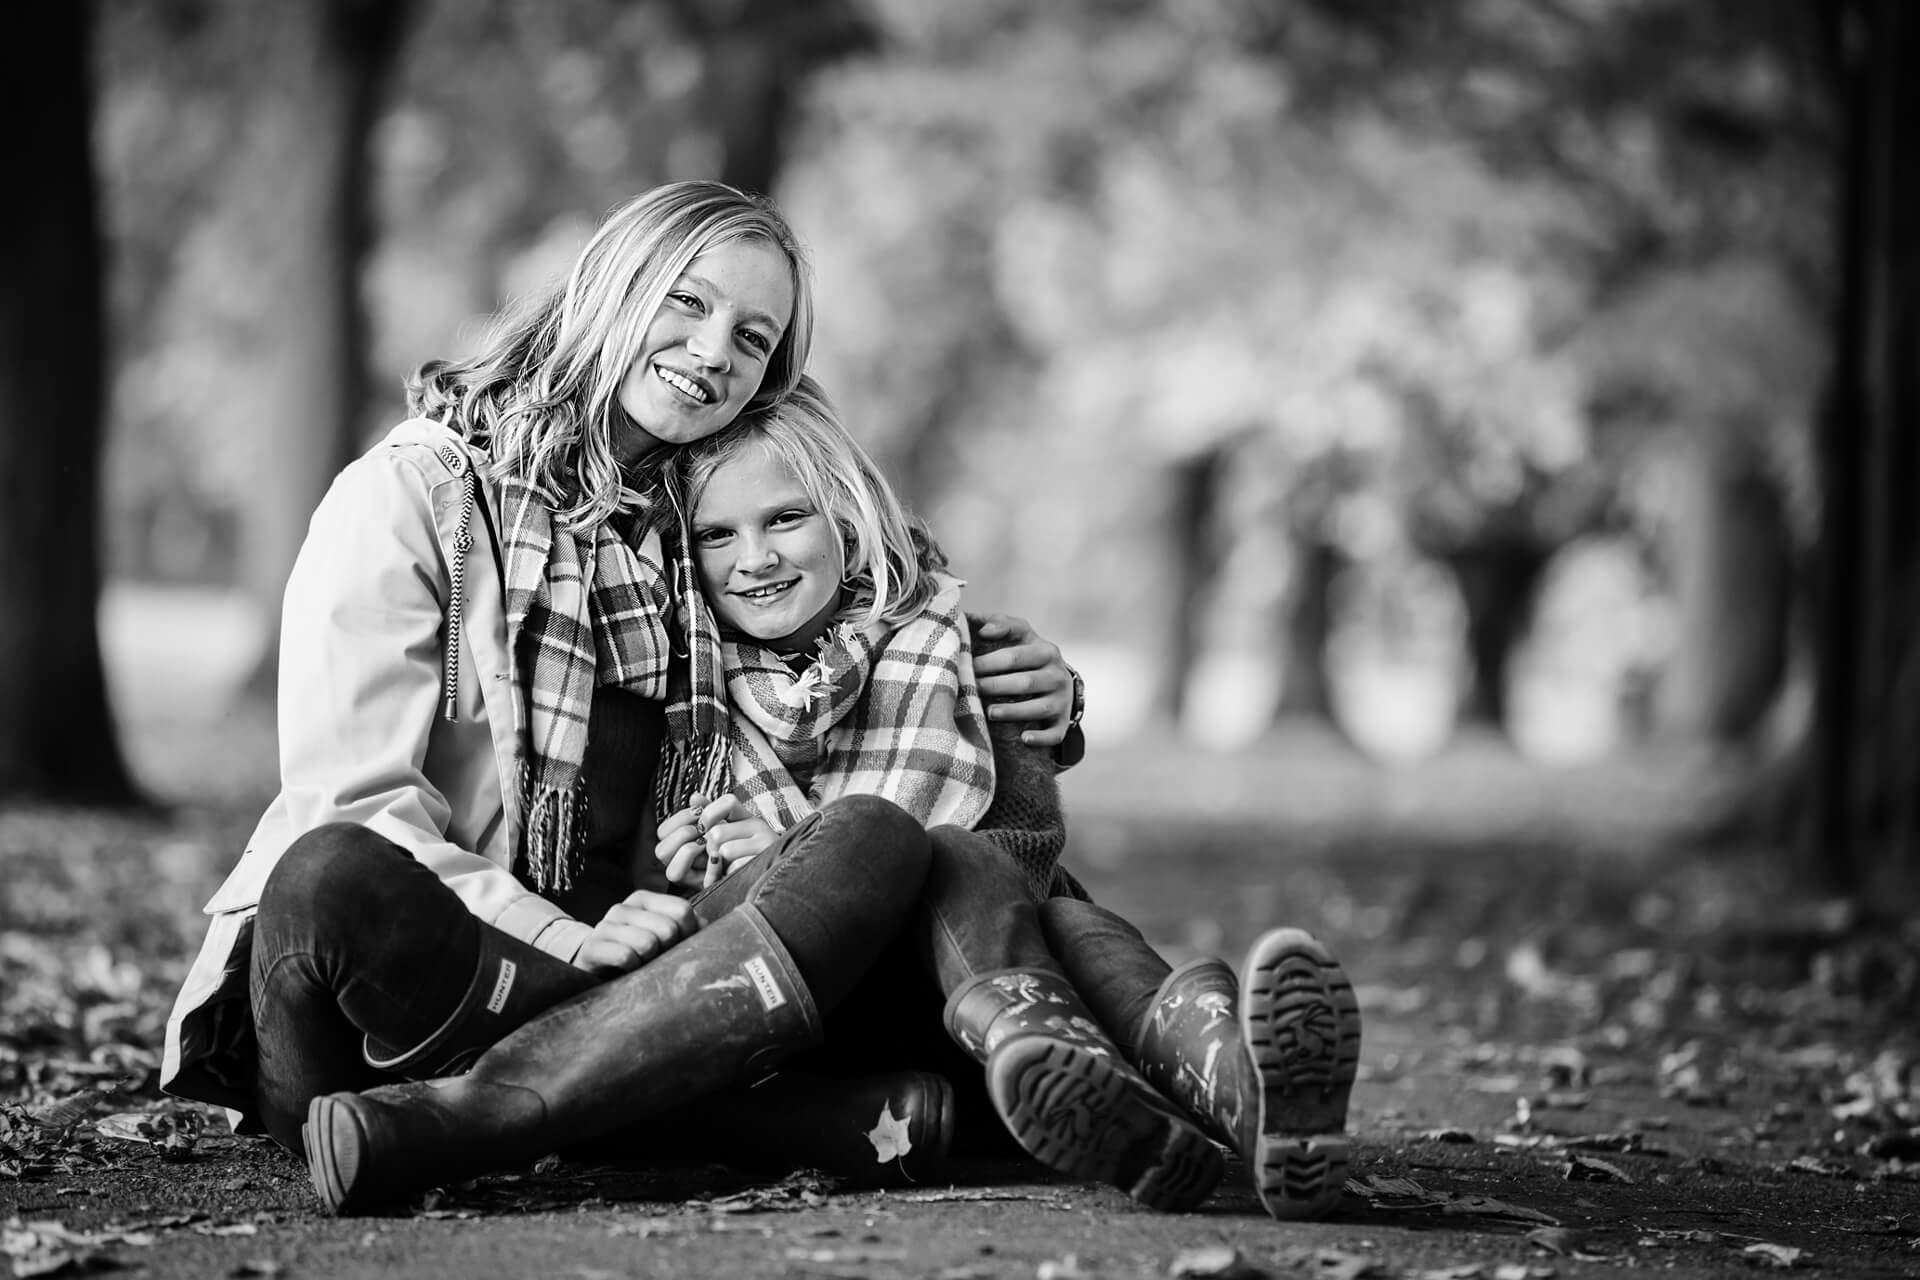 girl and her sister sitting in a park together